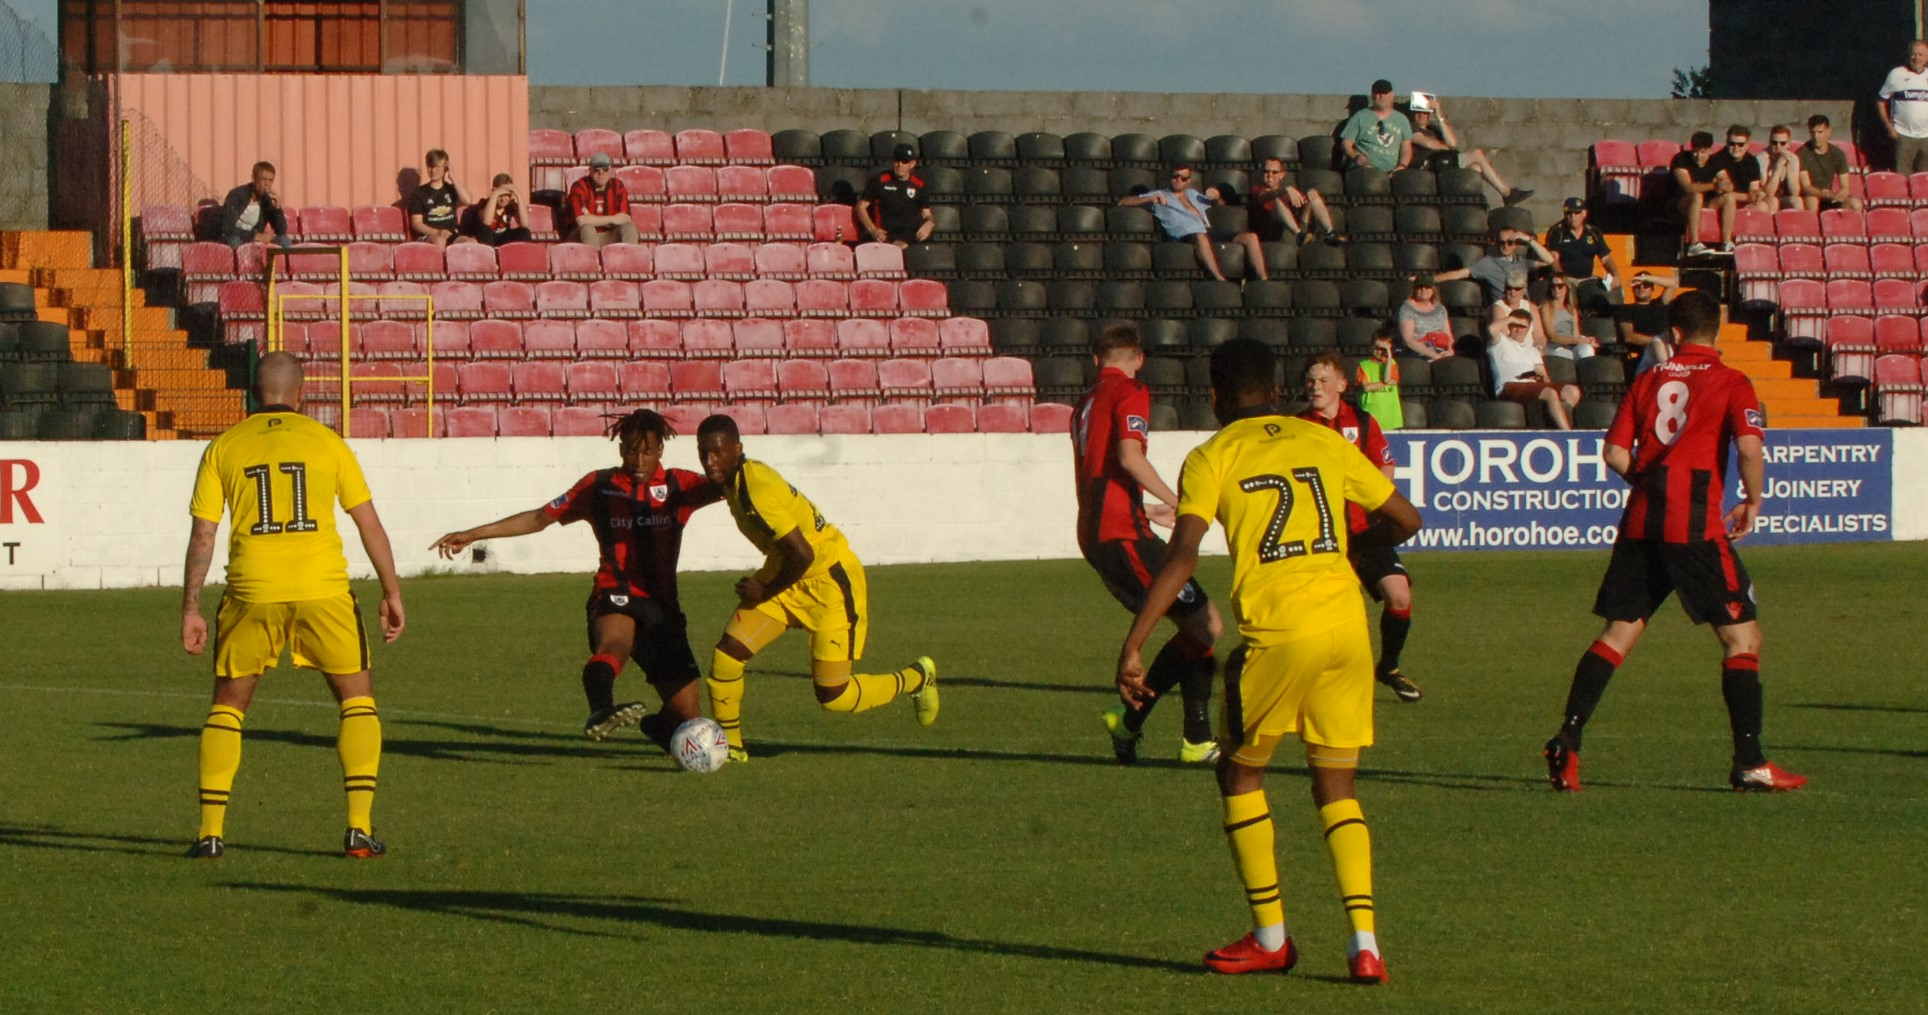 Shandon Baptiste drives into the penalty area for Oxford United in the first half